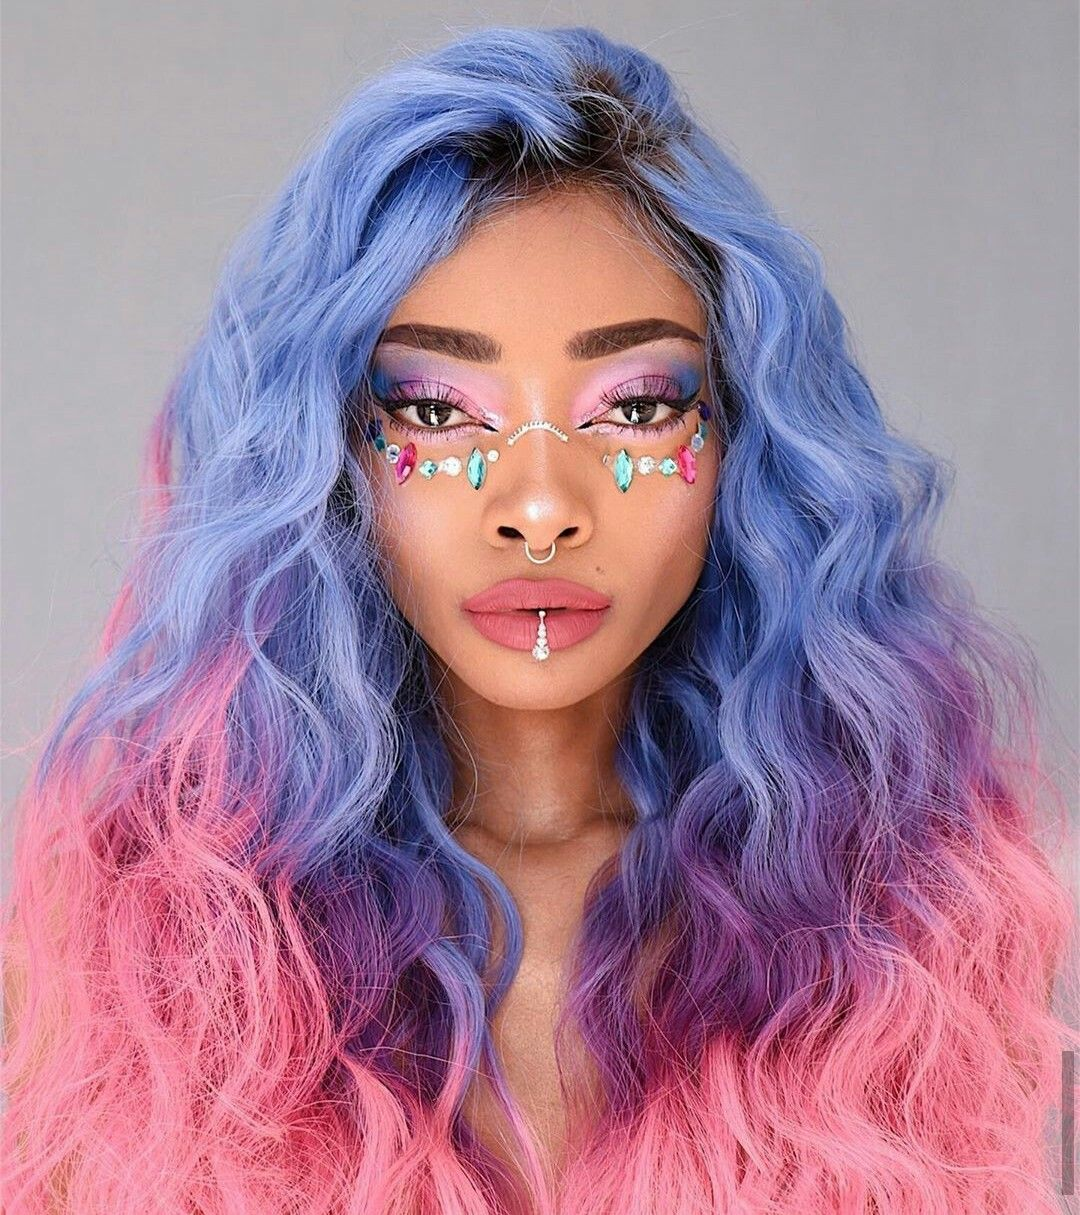 Blue Wigs Lace Frontal Wigs Cheap Human Wigs Hair Blue And Purple Kylie Blue Wig Blue Purple Pink Wig